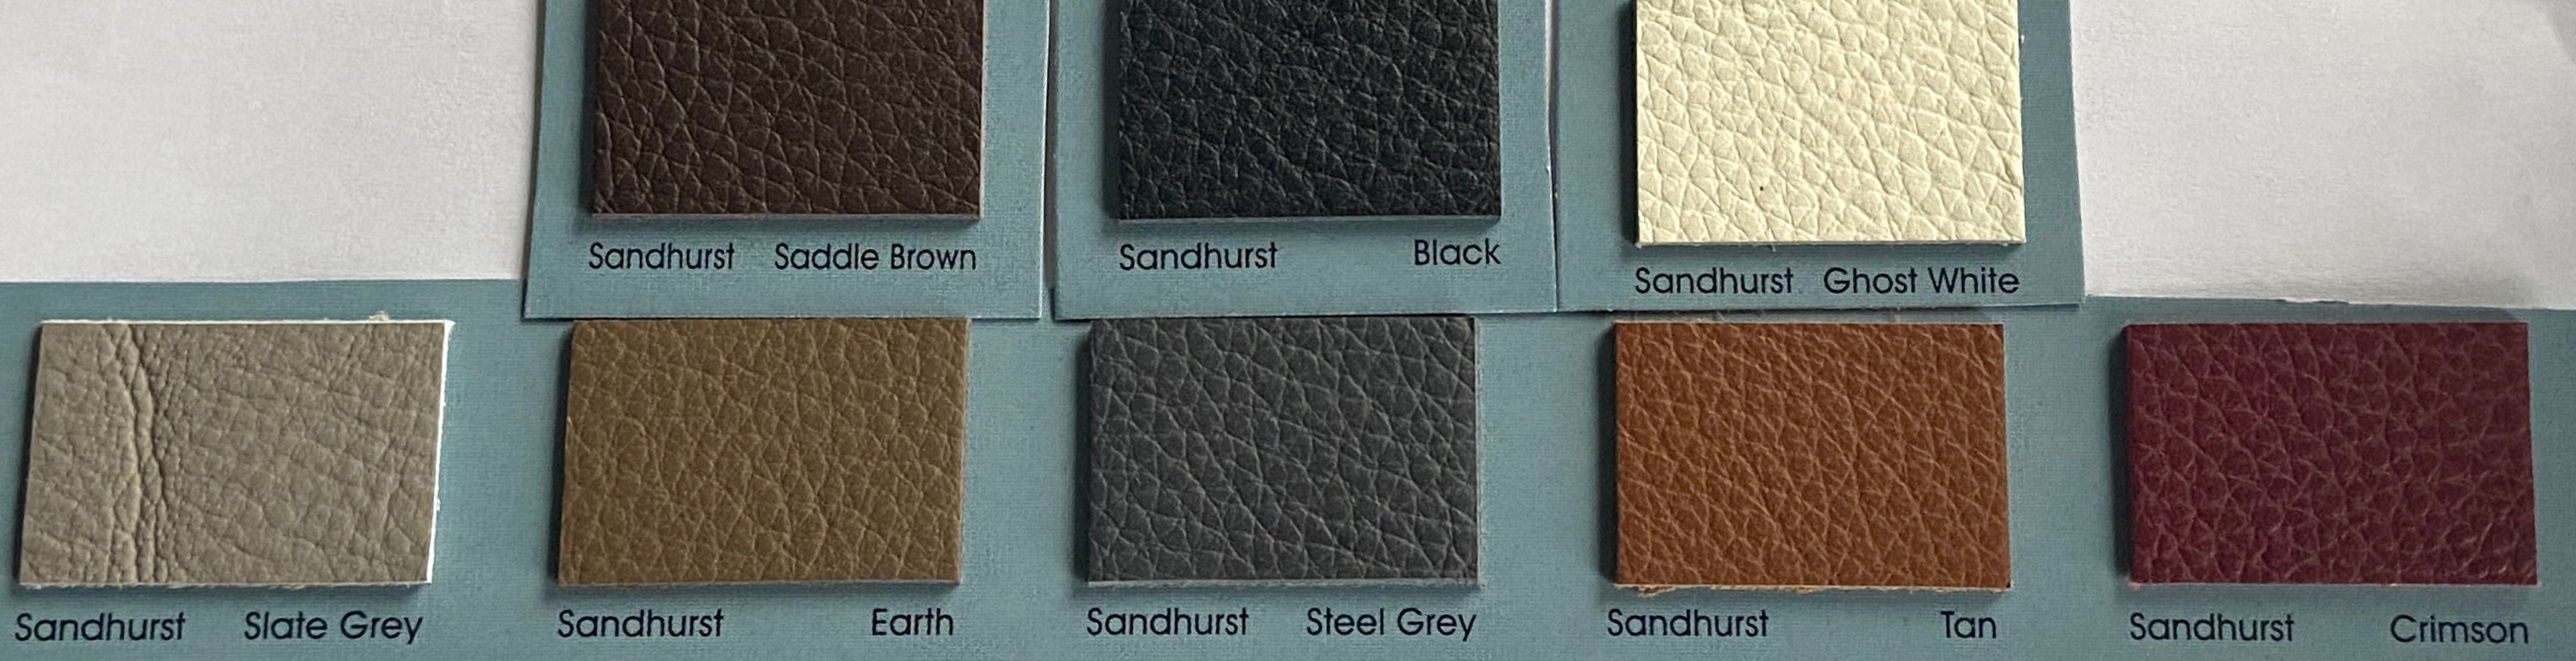 Sandhurst Black Italian Leather Cow Hide : (1.3-1.5mm) This Hide Is Perfect For Leather Upholstery , Leather Crafts , Leather Bags Leather Accessories.